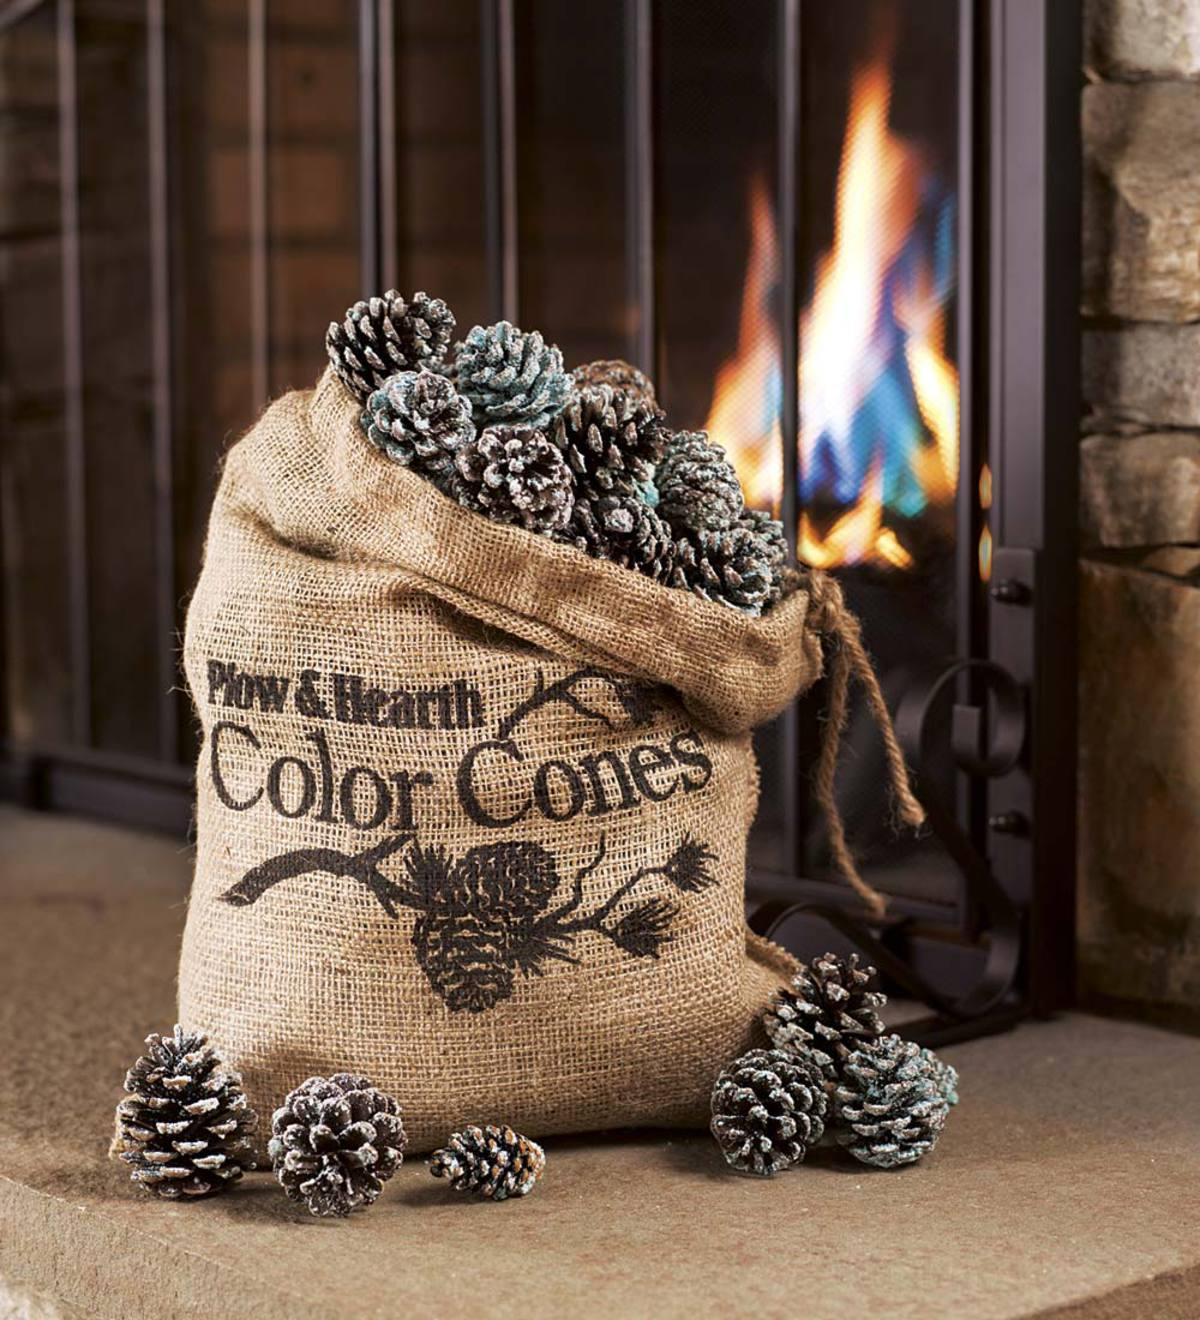 Color-Changing Fireplace Color Cones, 2 lb. Bag